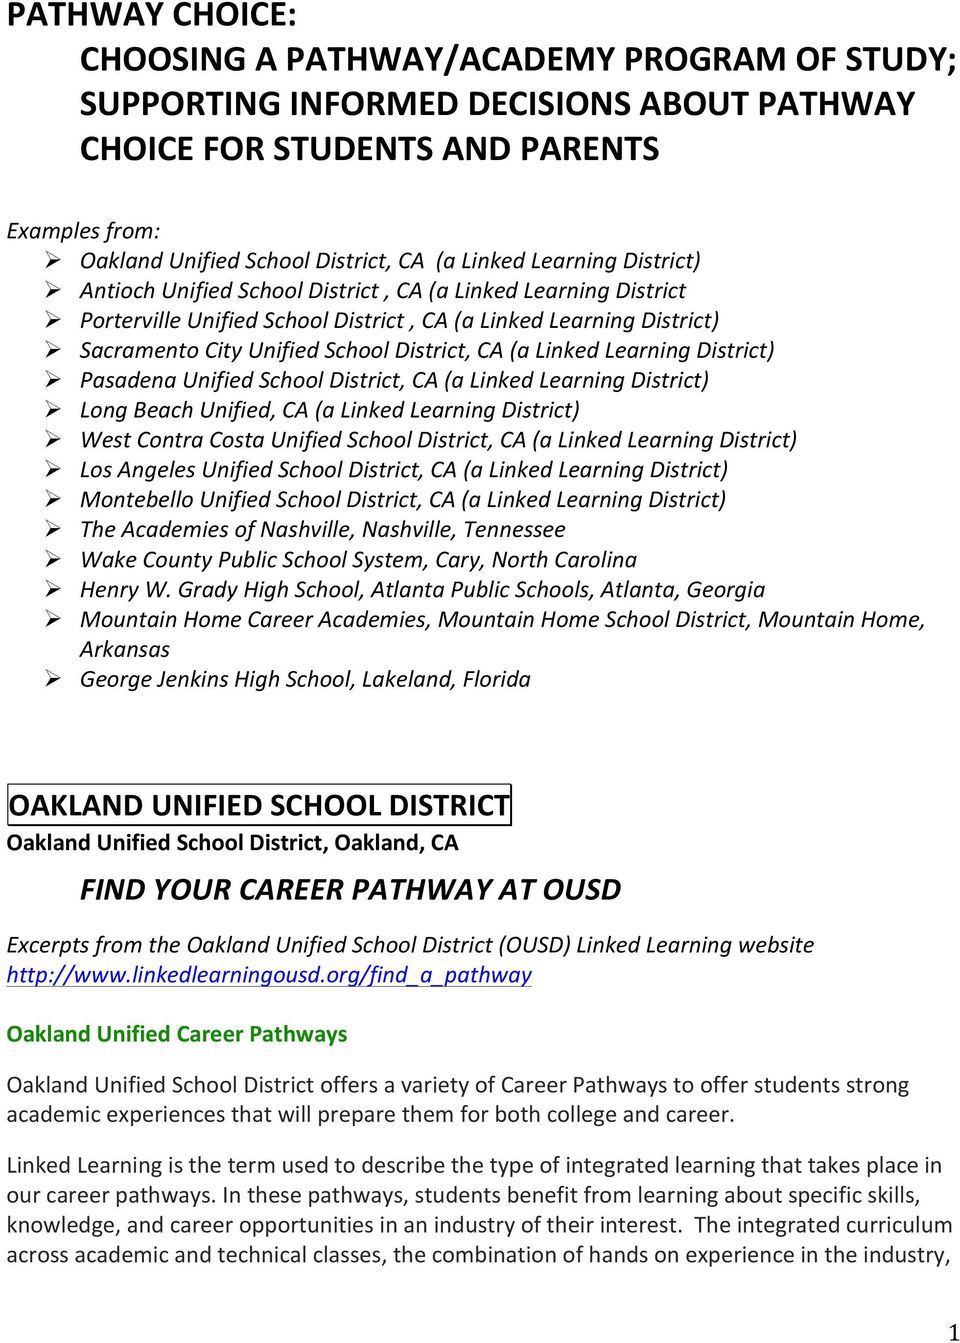 Linked Learning District) Pasadena Unified School District, CA (a Linked Learning District) Long Beach Unified, CA (a Linked Learning District) West Contra Costa Unified School District, CA (a Linked